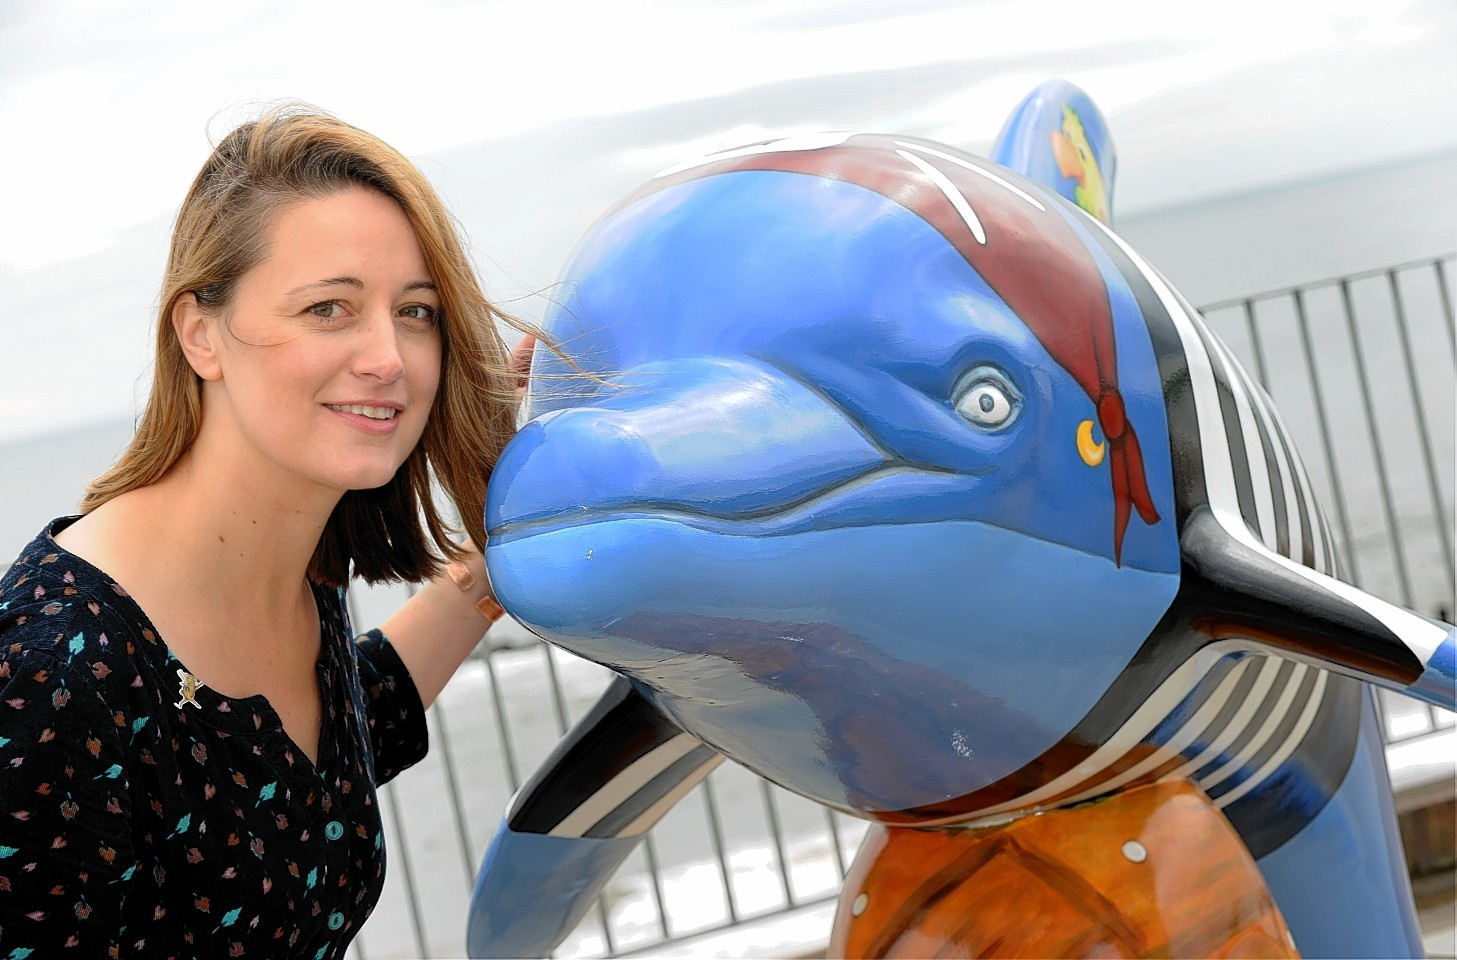 One of the life-sized fibreglass bottlenose dolphins